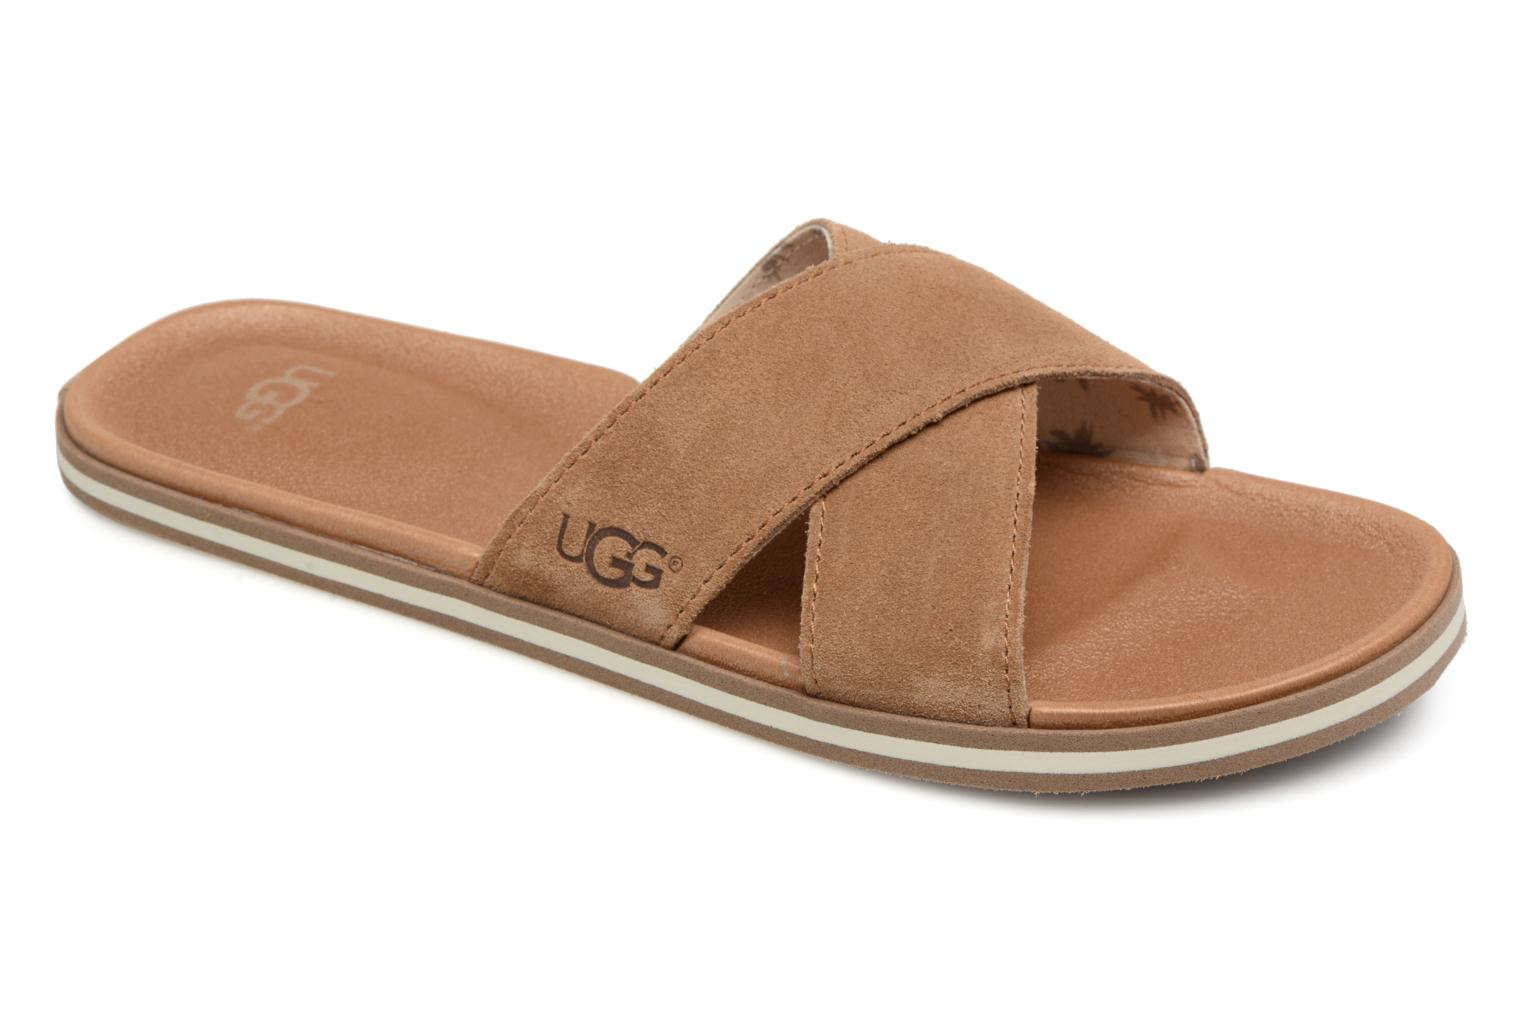 Beach Slide by UGG